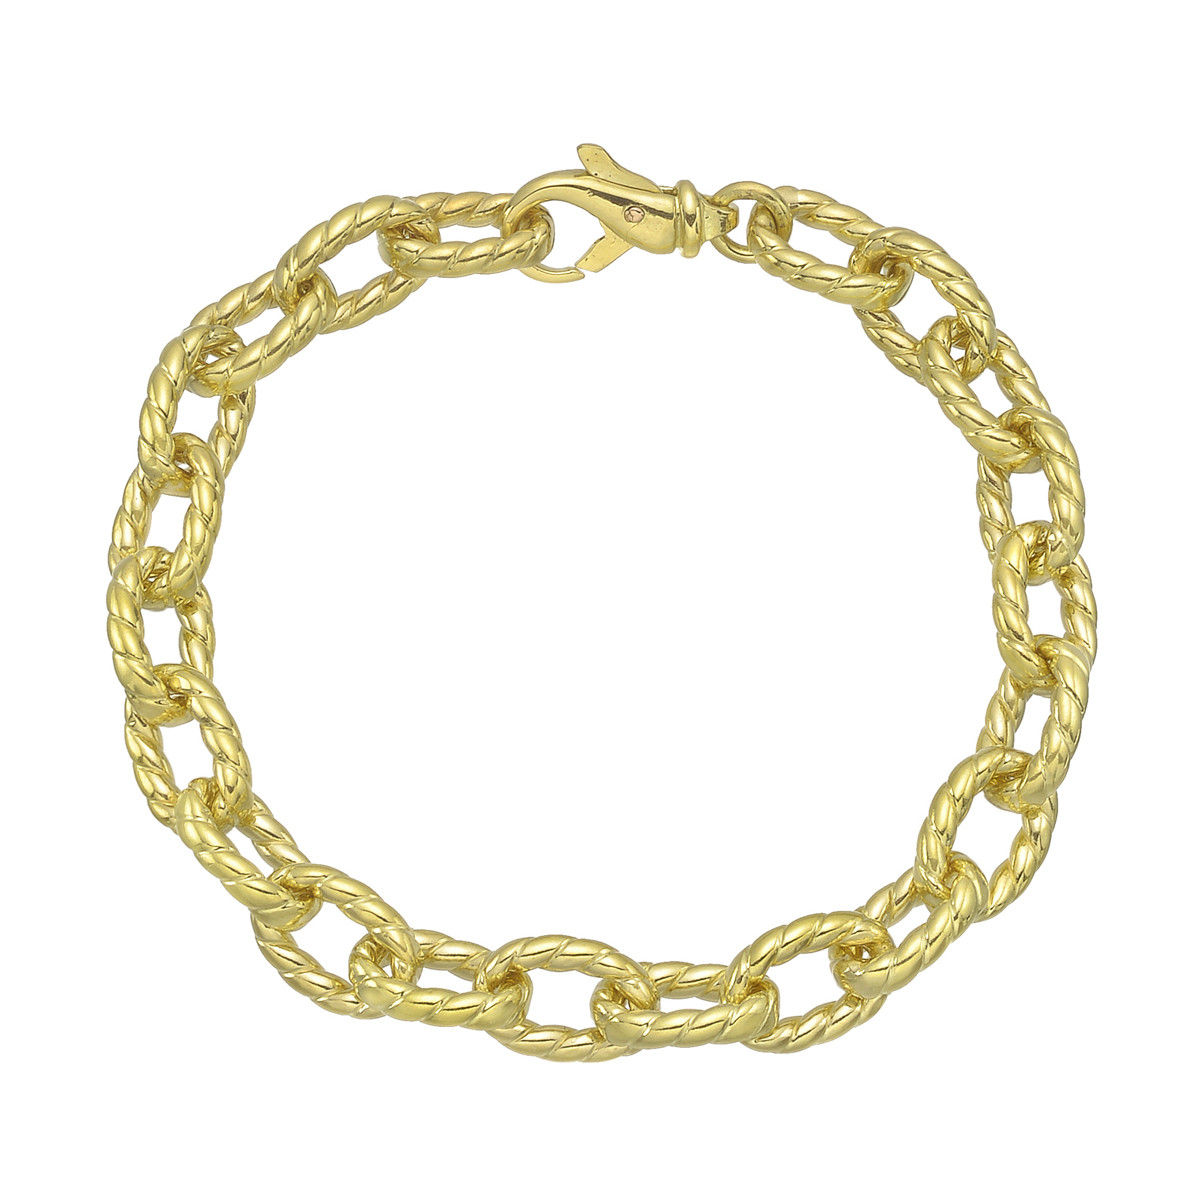 18k Yellow Gold Oval Twist Link Bracelet